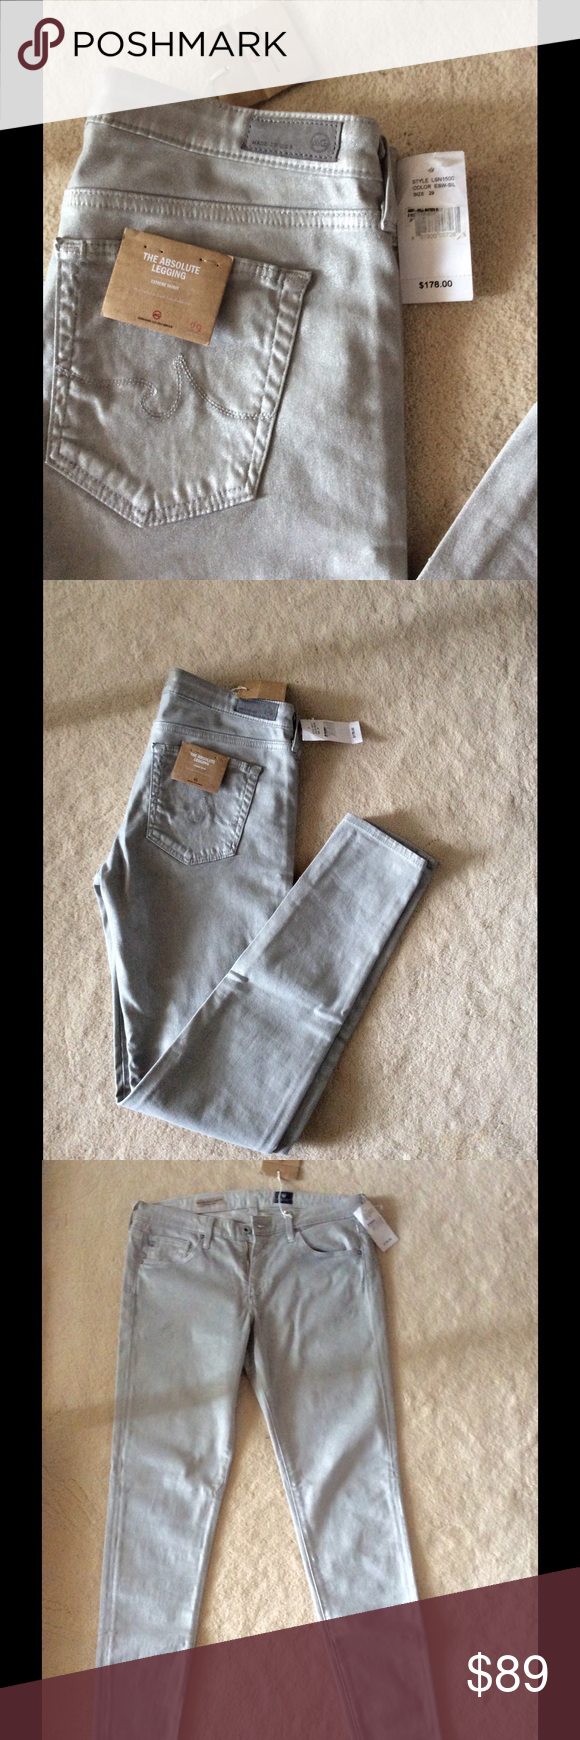 Brand new AG rare jeans Color - shimmery gray. Brand new with tags. Size -29. Stunning jeans AG Adriano Goldschmied Jeans Skinny